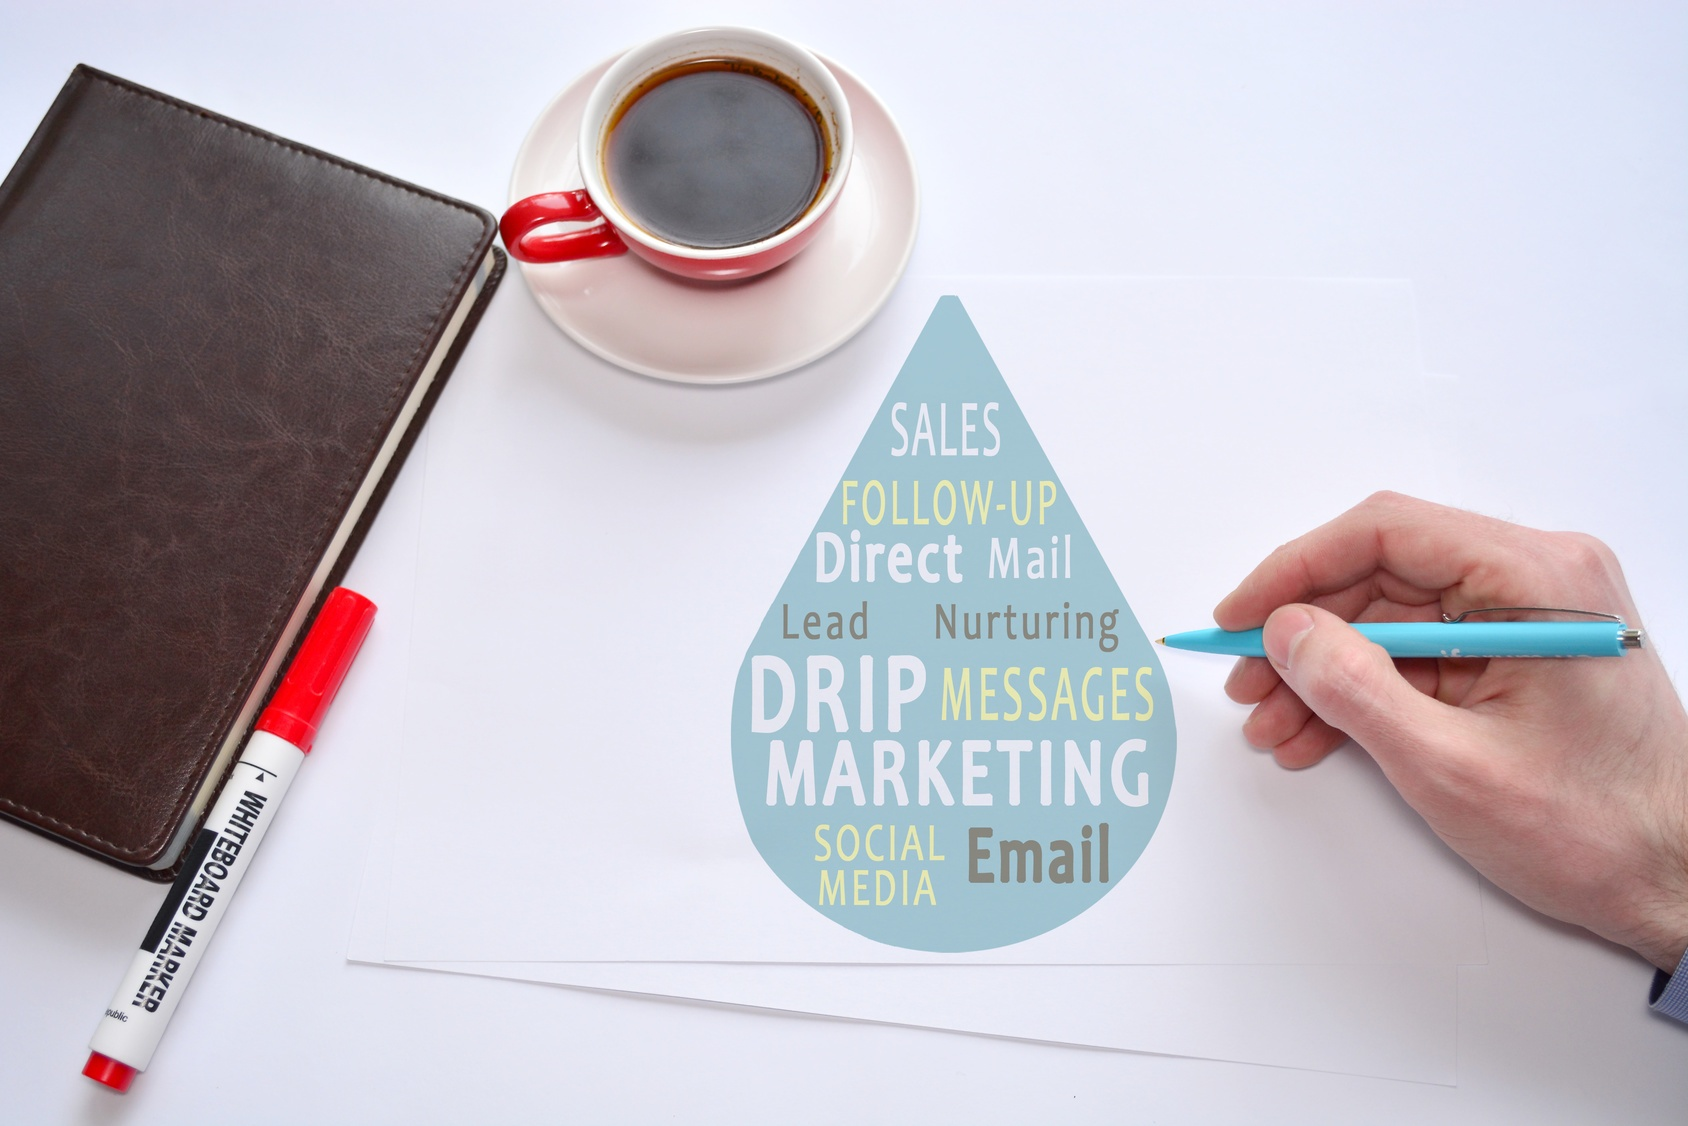 5 Steps to Your Next Lead Nurturing Campaign